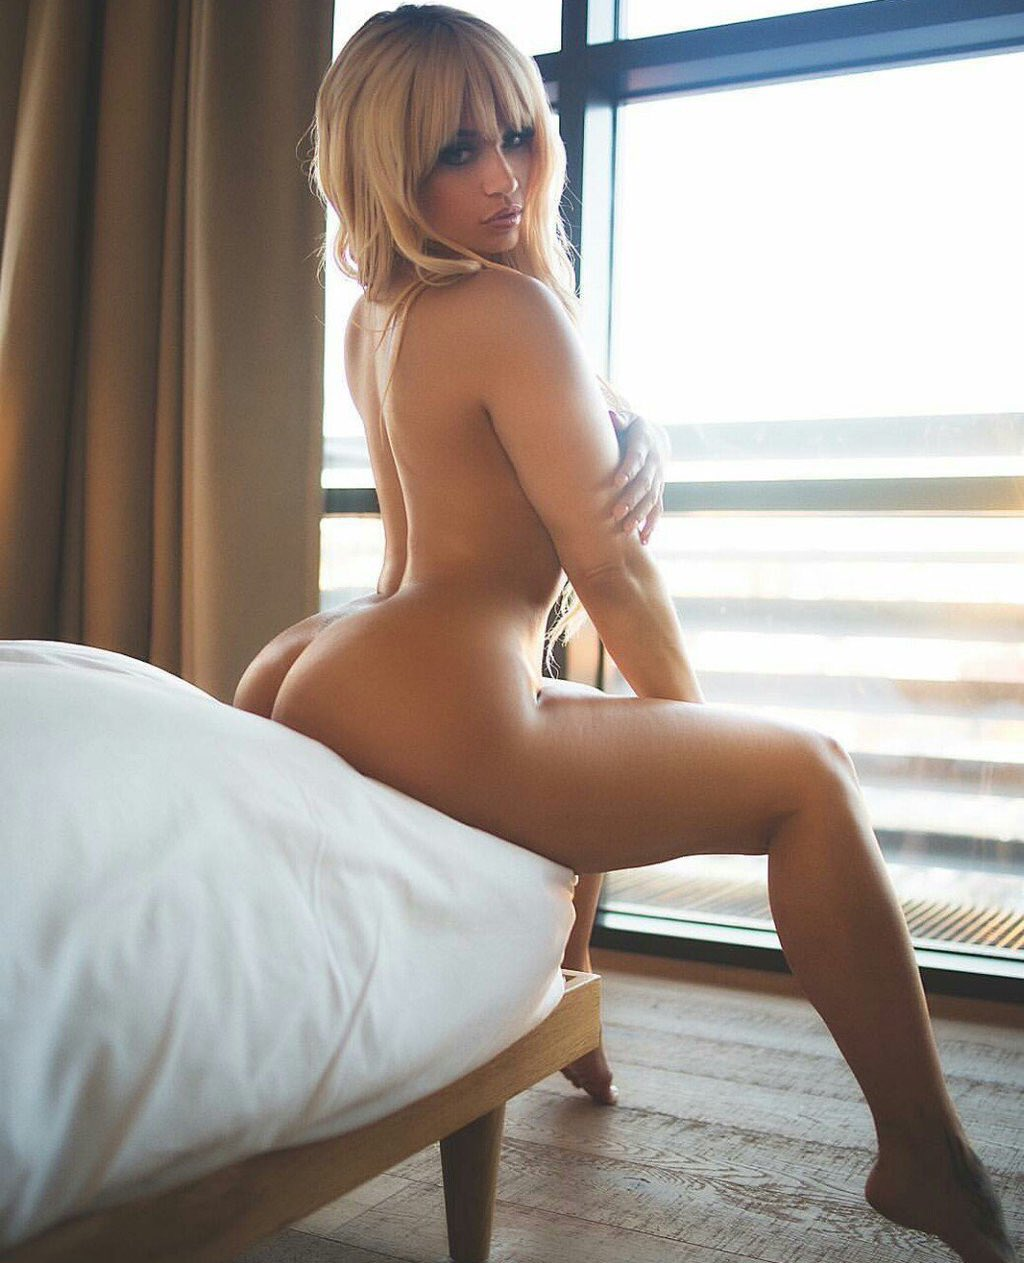 Downtown seattle escorts